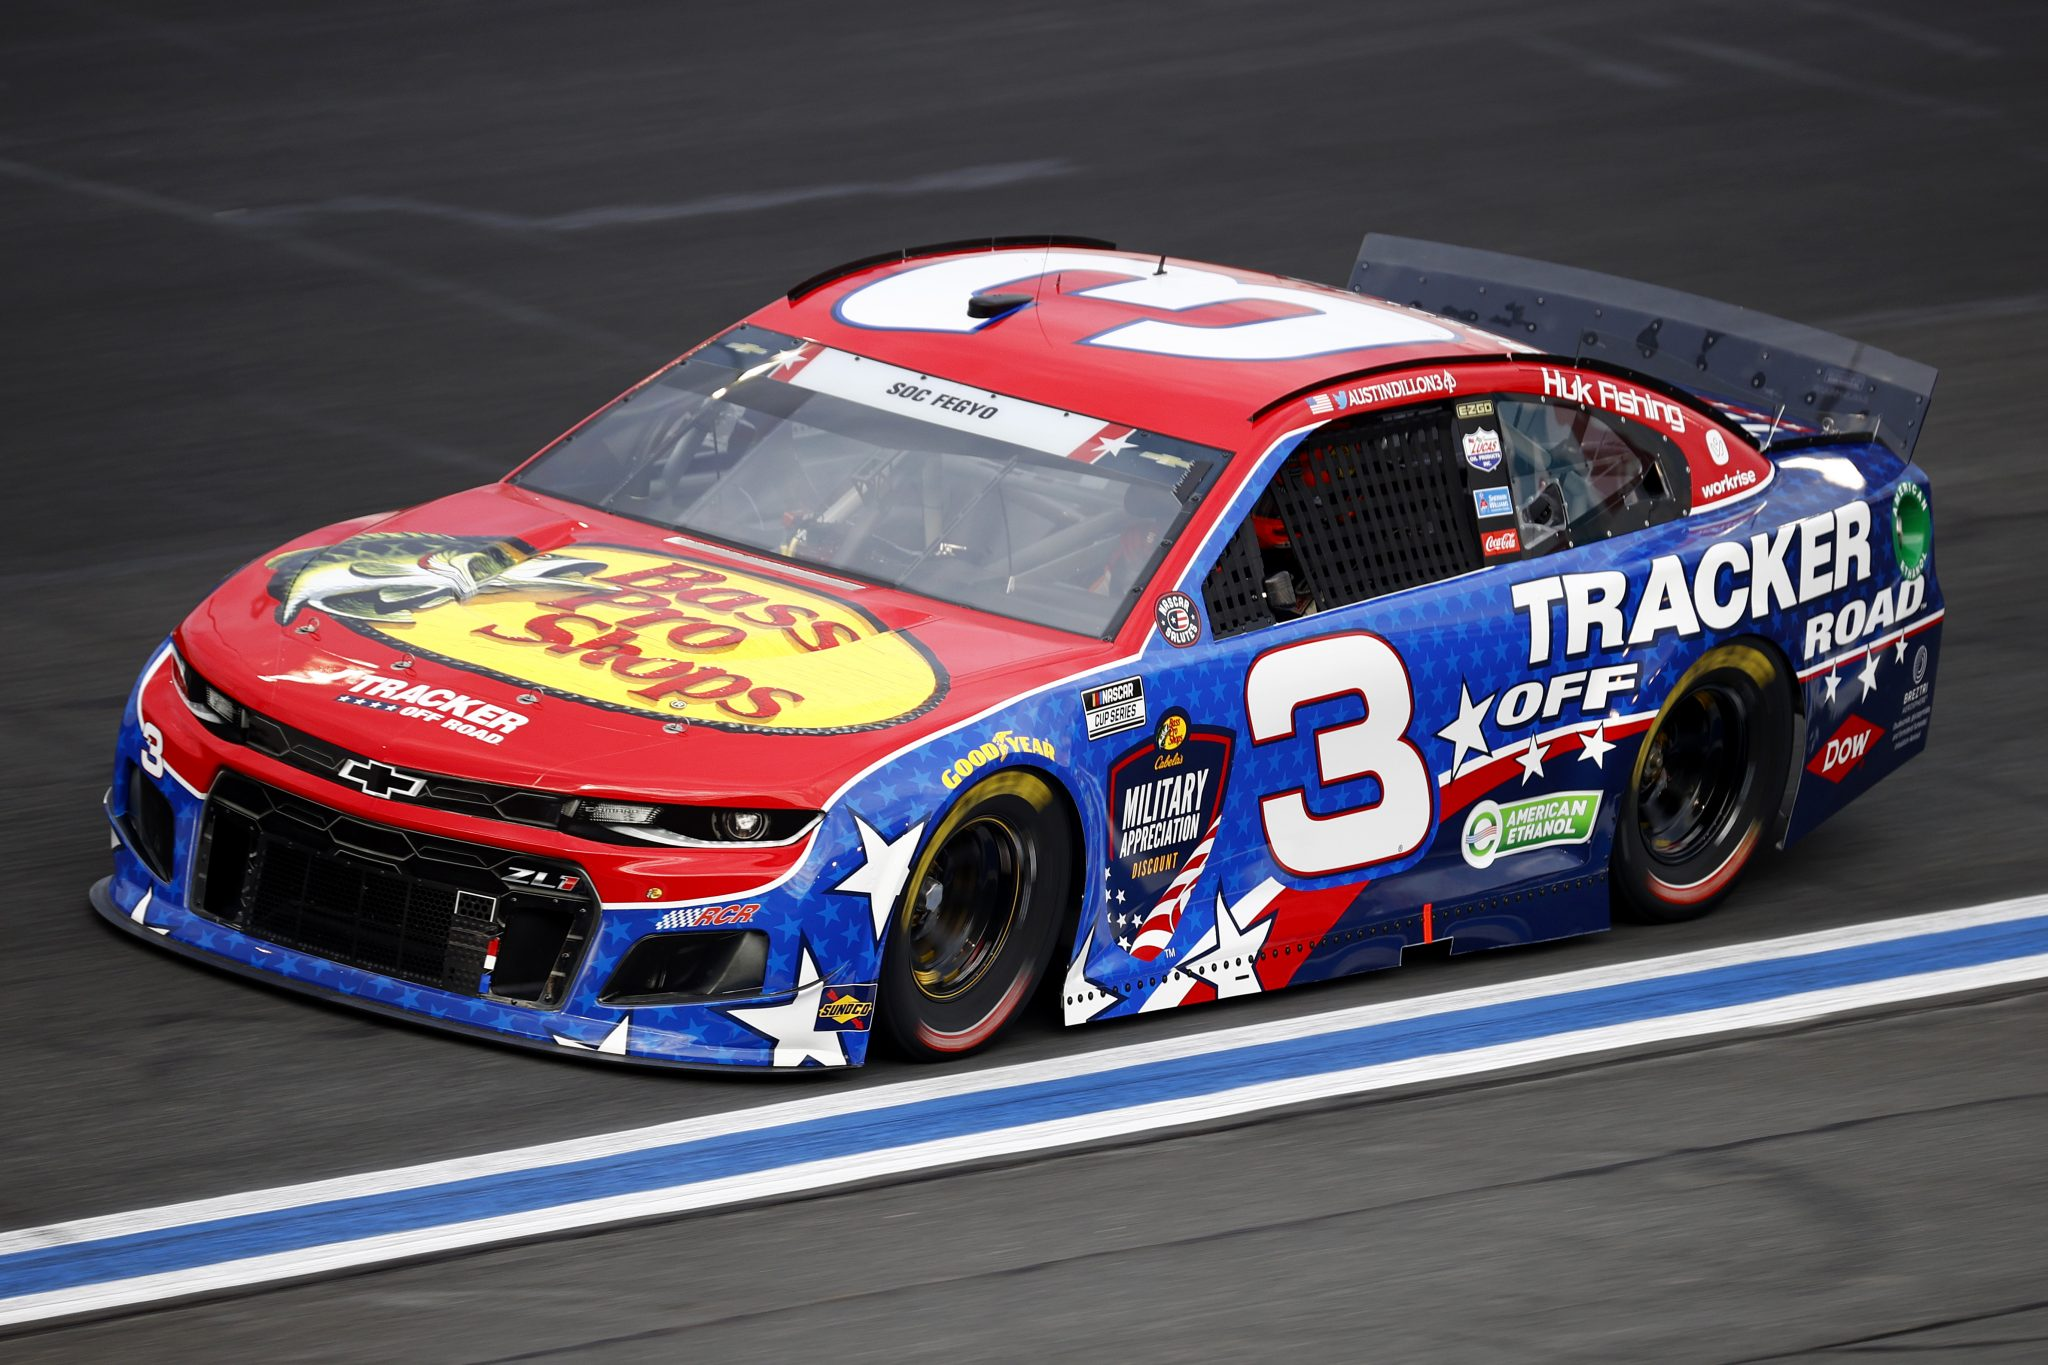 CONCORD, NORTH CAROLINA - MAY 28: Austin Dillon, driver of the #3 Bass Pro Shops/Tracker Off Road Chevrolet, drives during practice for the NASCAR Cup Series Coca-Cola 600 at Charlotte Motor Speedway on May 28, 2021 in Concord, North Carolina. (Photo by Jared C. Tilton/Getty Images) | Getty Images